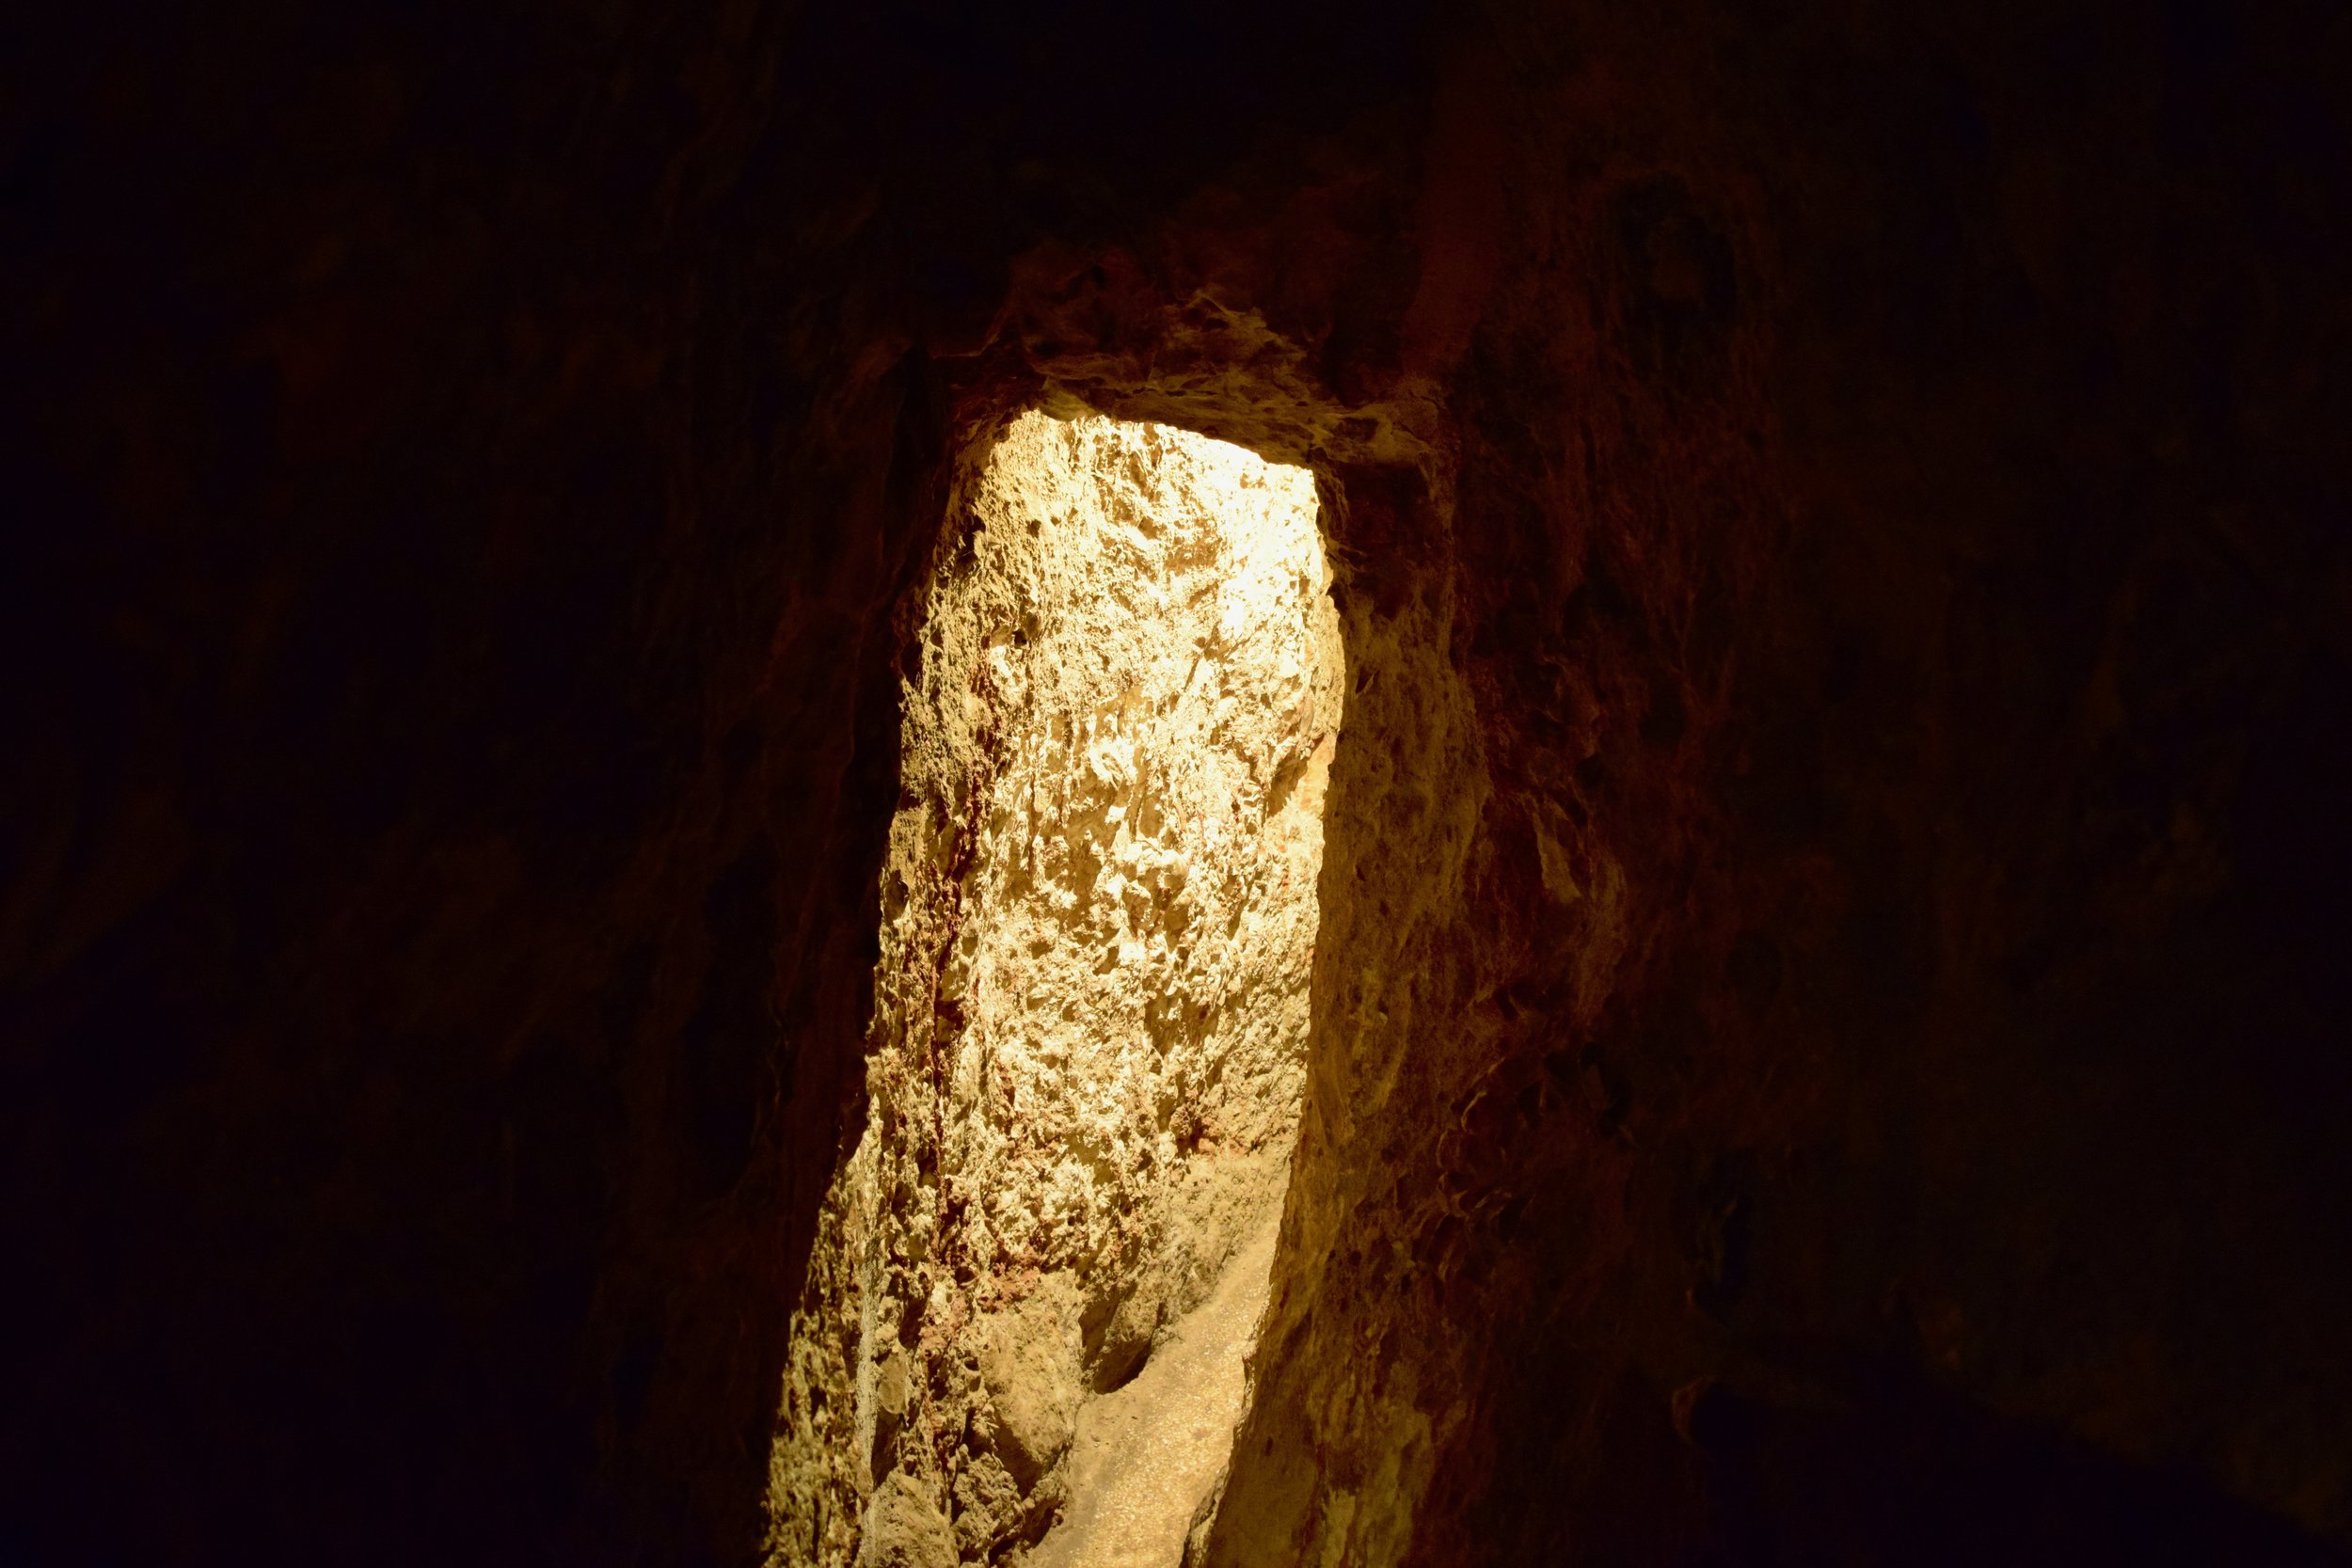 Tunnels of the City of David